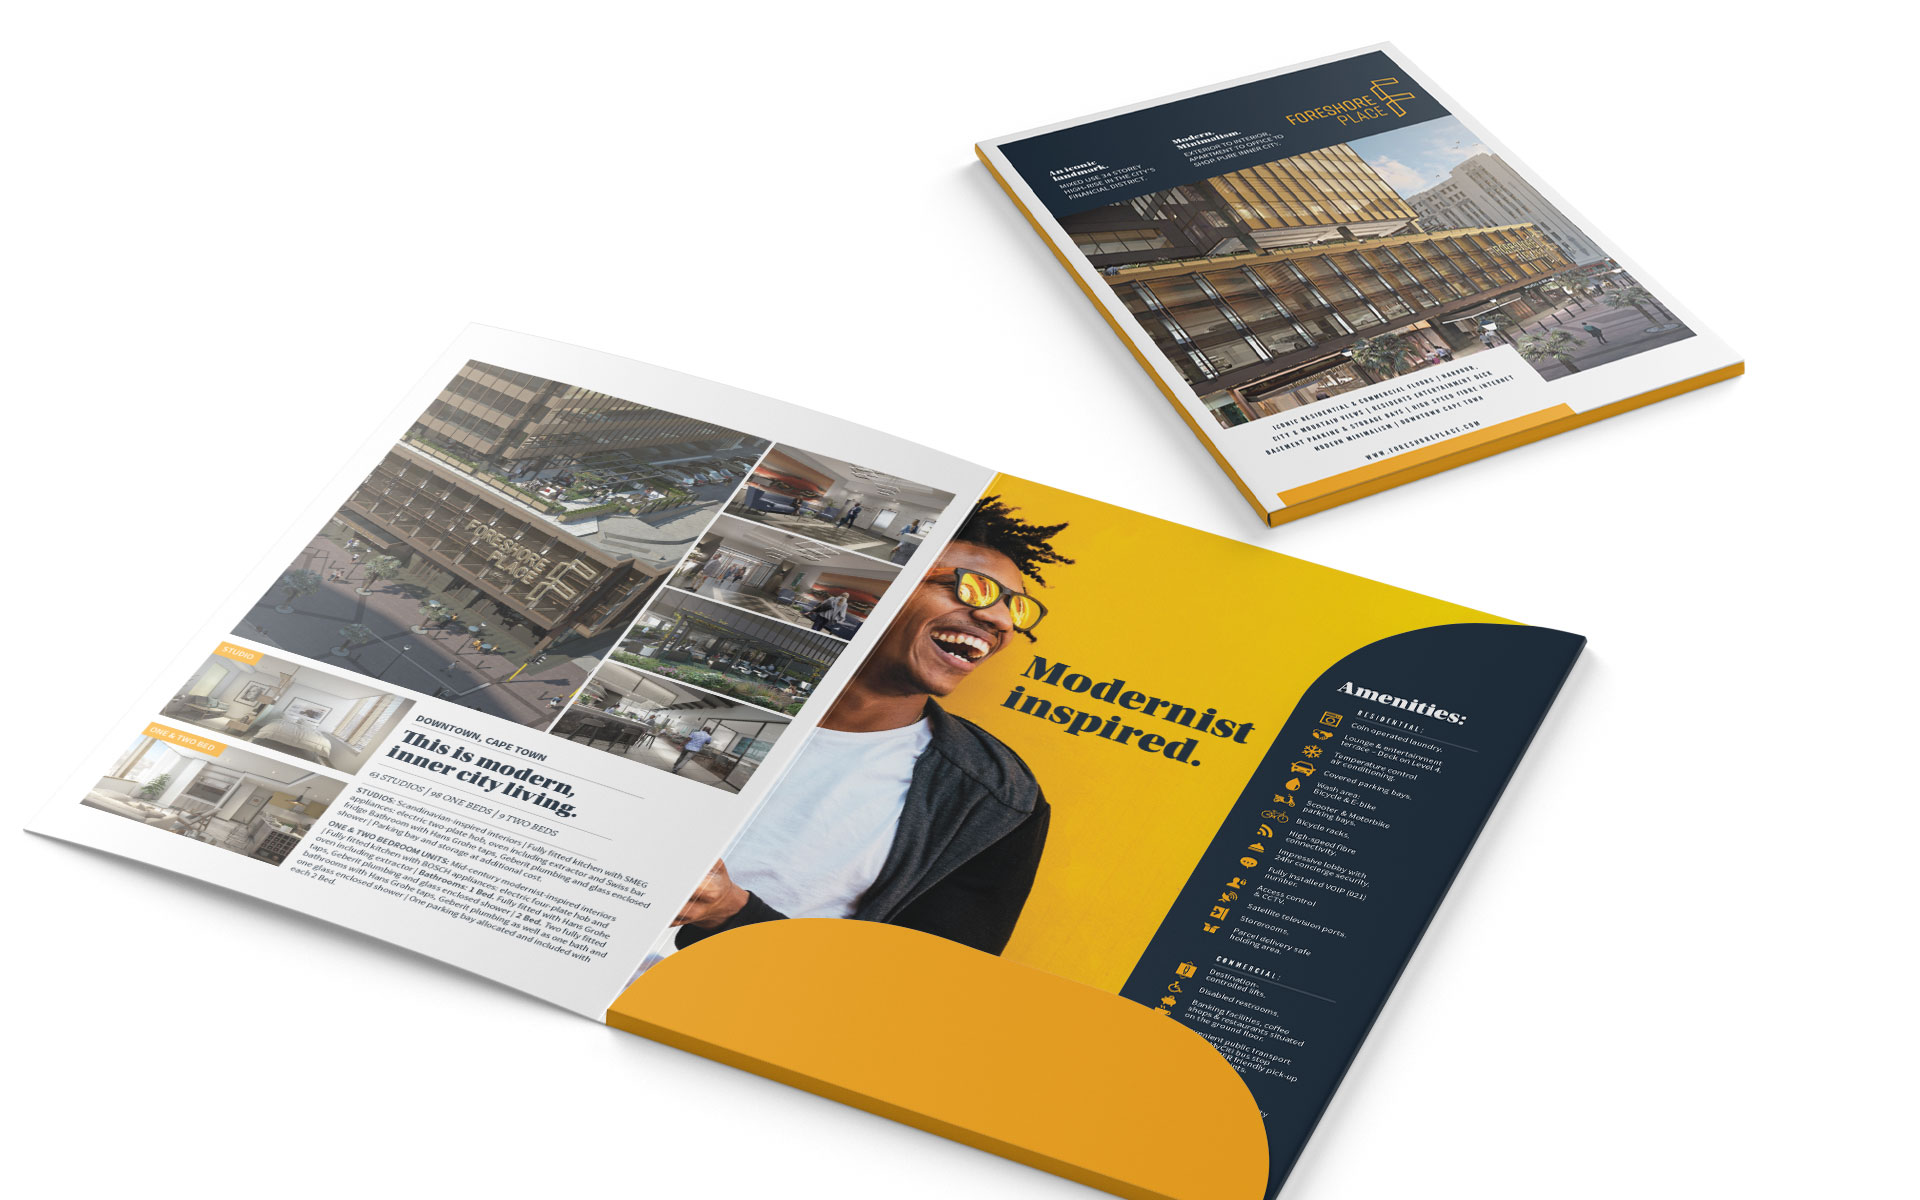 sales and marketing printed brochures showing branded property development project